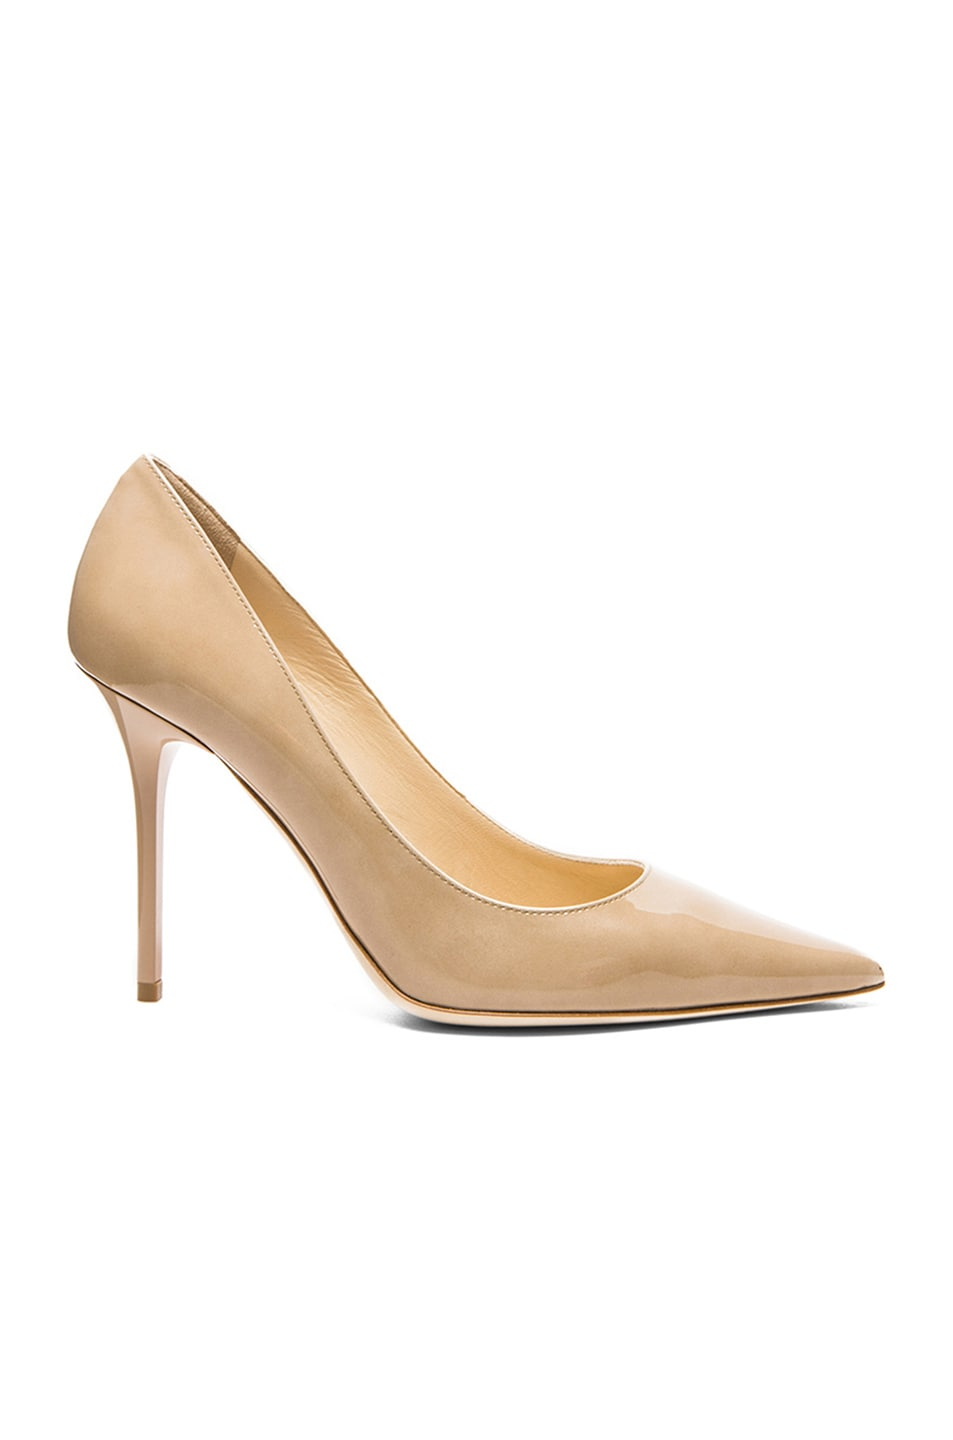 Image 1 of Jimmy Choo Abel 100 Patent Pumps in Nude